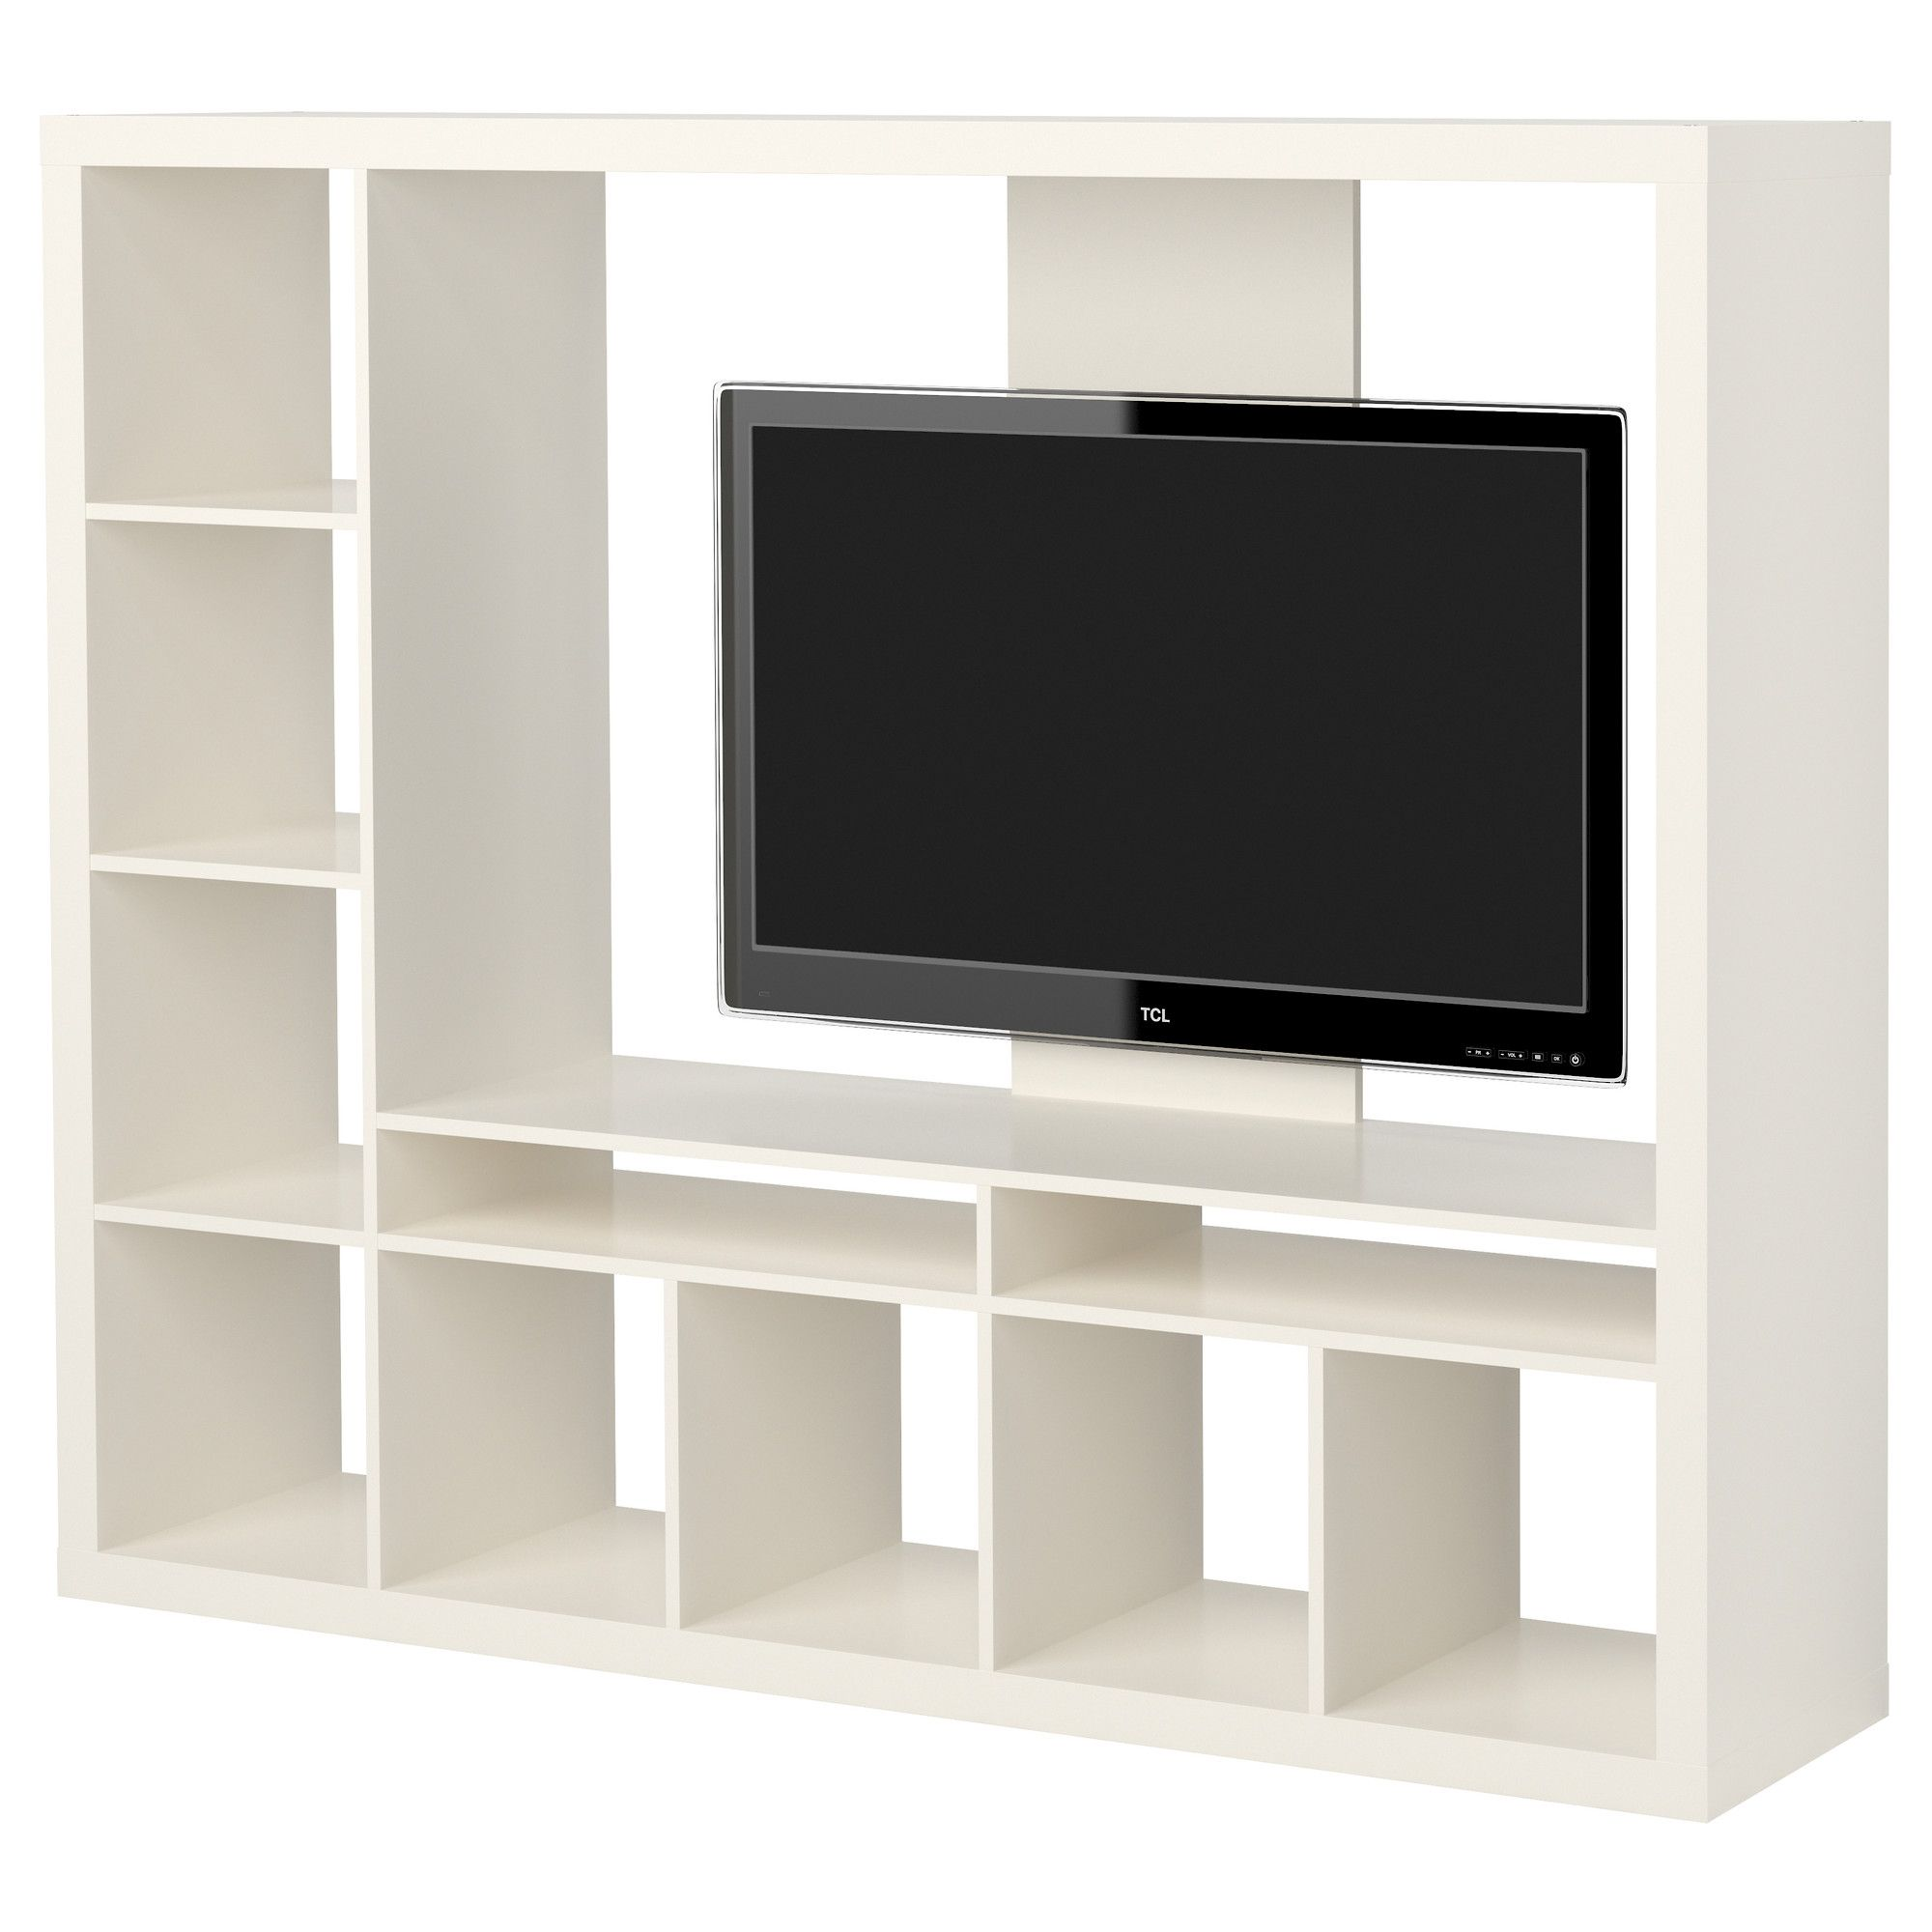 expedit meuble tv blanc ikea s jour pinterest meuble tv tv et conseil deco. Black Bedroom Furniture Sets. Home Design Ideas